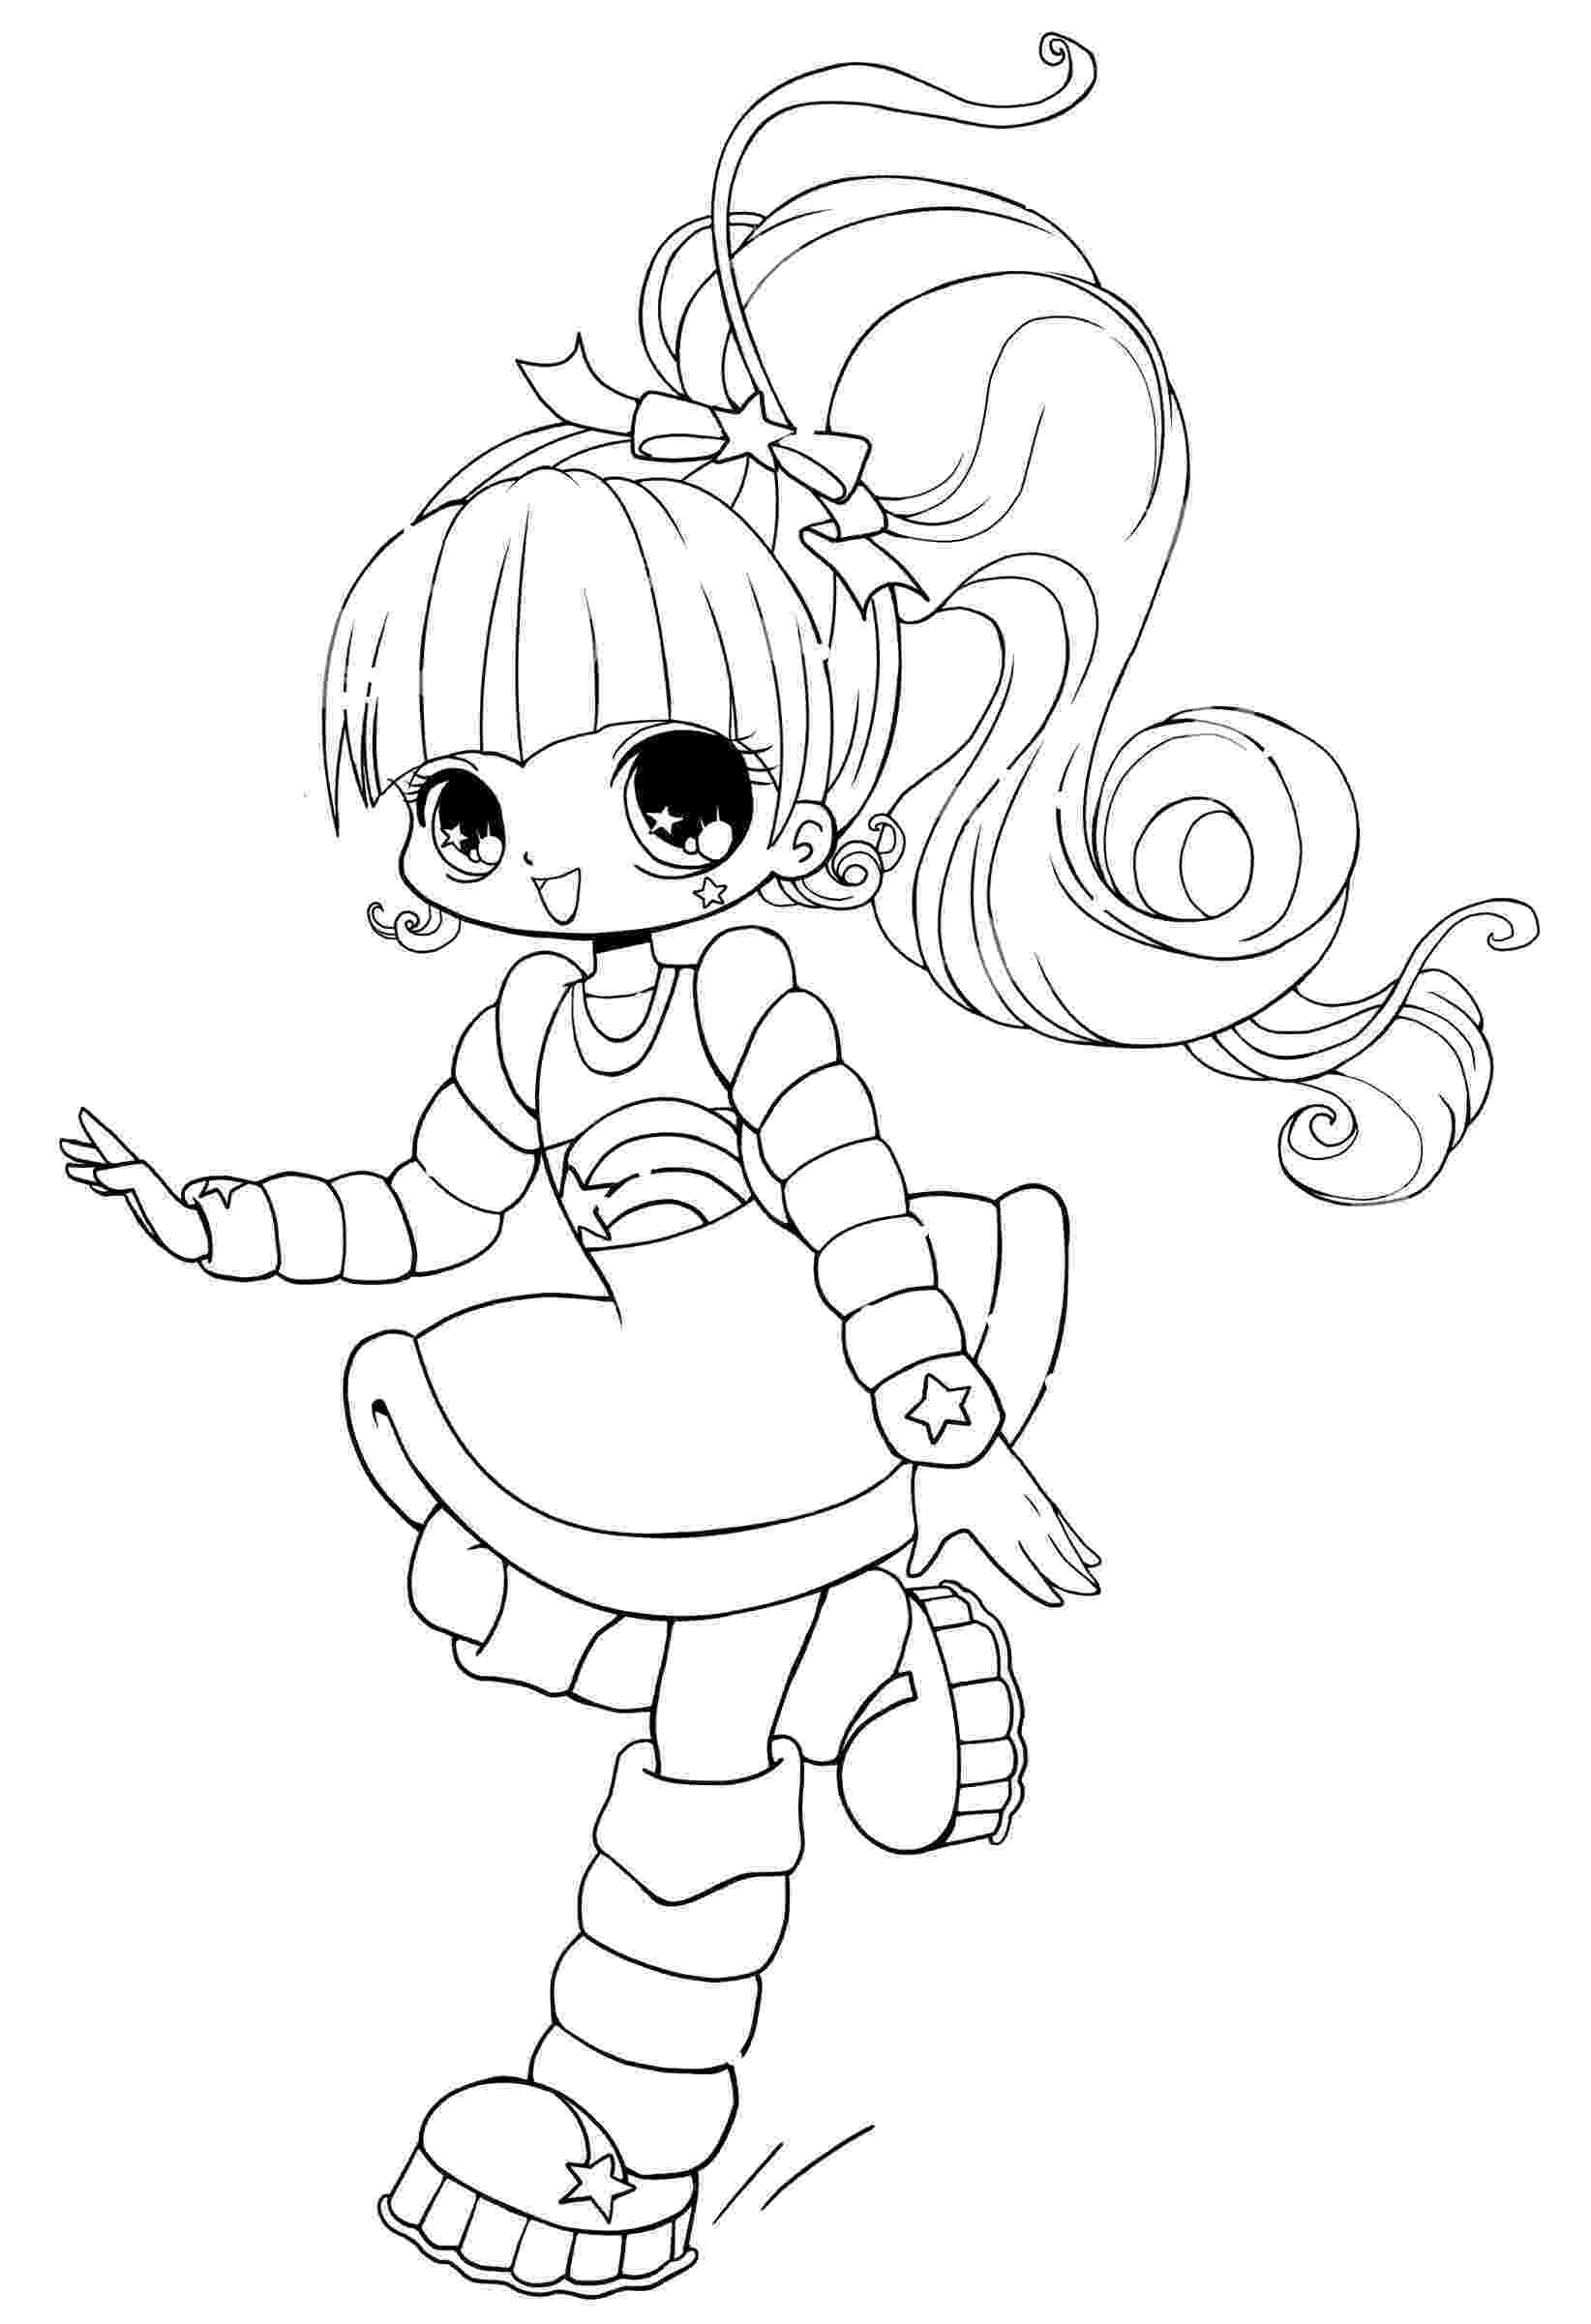 cute anime coloring pages to print cute coloring pages best coloring pages for kids anime print to coloring cute pages